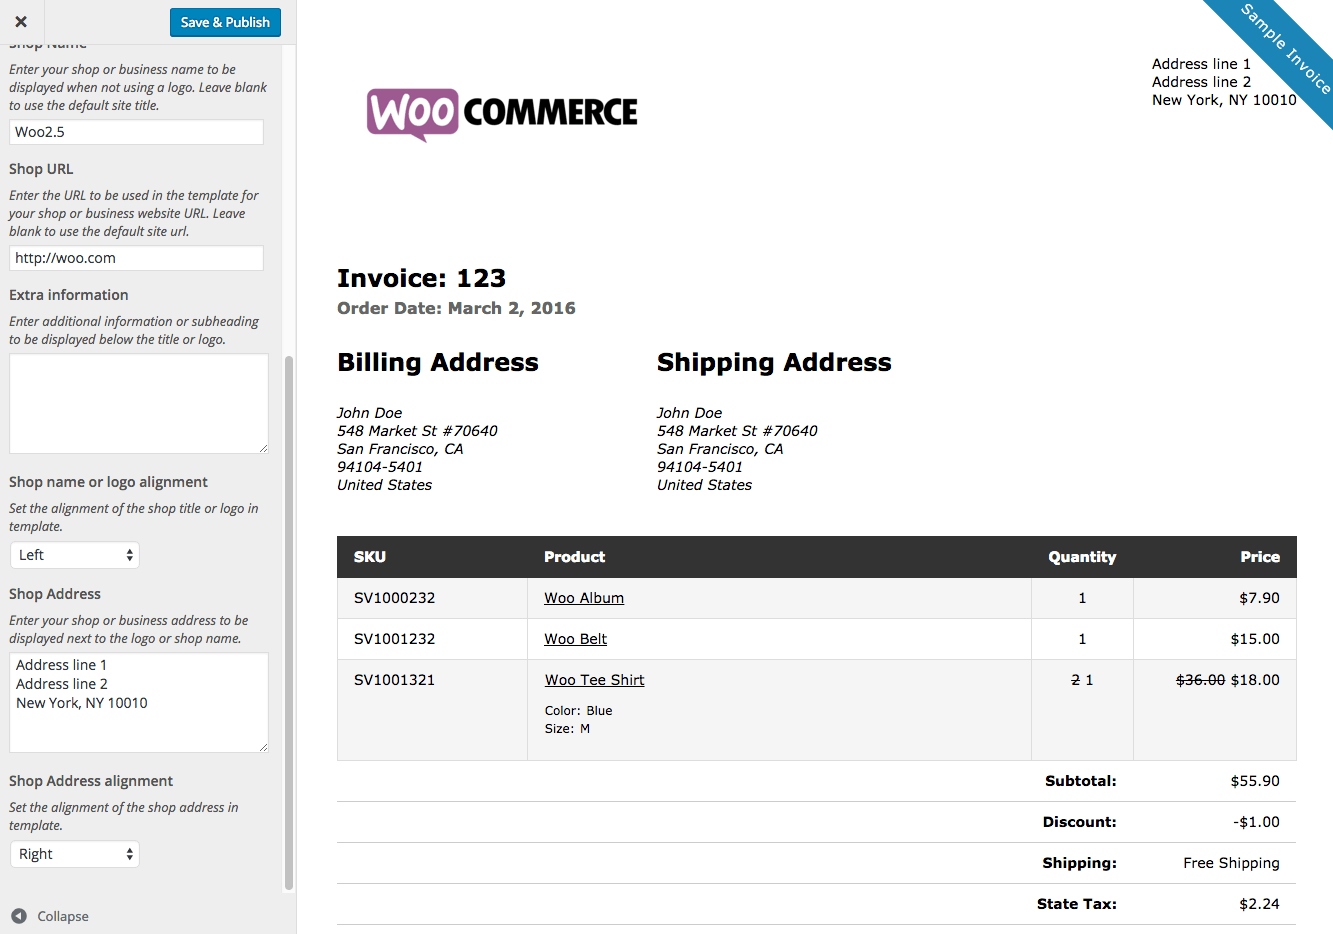 Proatmealus  Remarkable Woocommerce Print Invoices Amp Packing Lists  Woocommerce Docs With Exciting Woocommerce Print Invoices  Packing Lists Customizer With Captivating Acknowledgement Receipt Form Also Employee Handbook Receipt In Addition Is A Receipt A Contract And Slow Cooker Receipt As Well As Charitable Donation Receipt Letter Additionally Neat Receipts Walmart From Docswoocommercecom With Proatmealus  Exciting Woocommerce Print Invoices Amp Packing Lists  Woocommerce Docs With Captivating Woocommerce Print Invoices  Packing Lists Customizer And Remarkable Acknowledgement Receipt Form Also Employee Handbook Receipt In Addition Is A Receipt A Contract From Docswoocommercecom